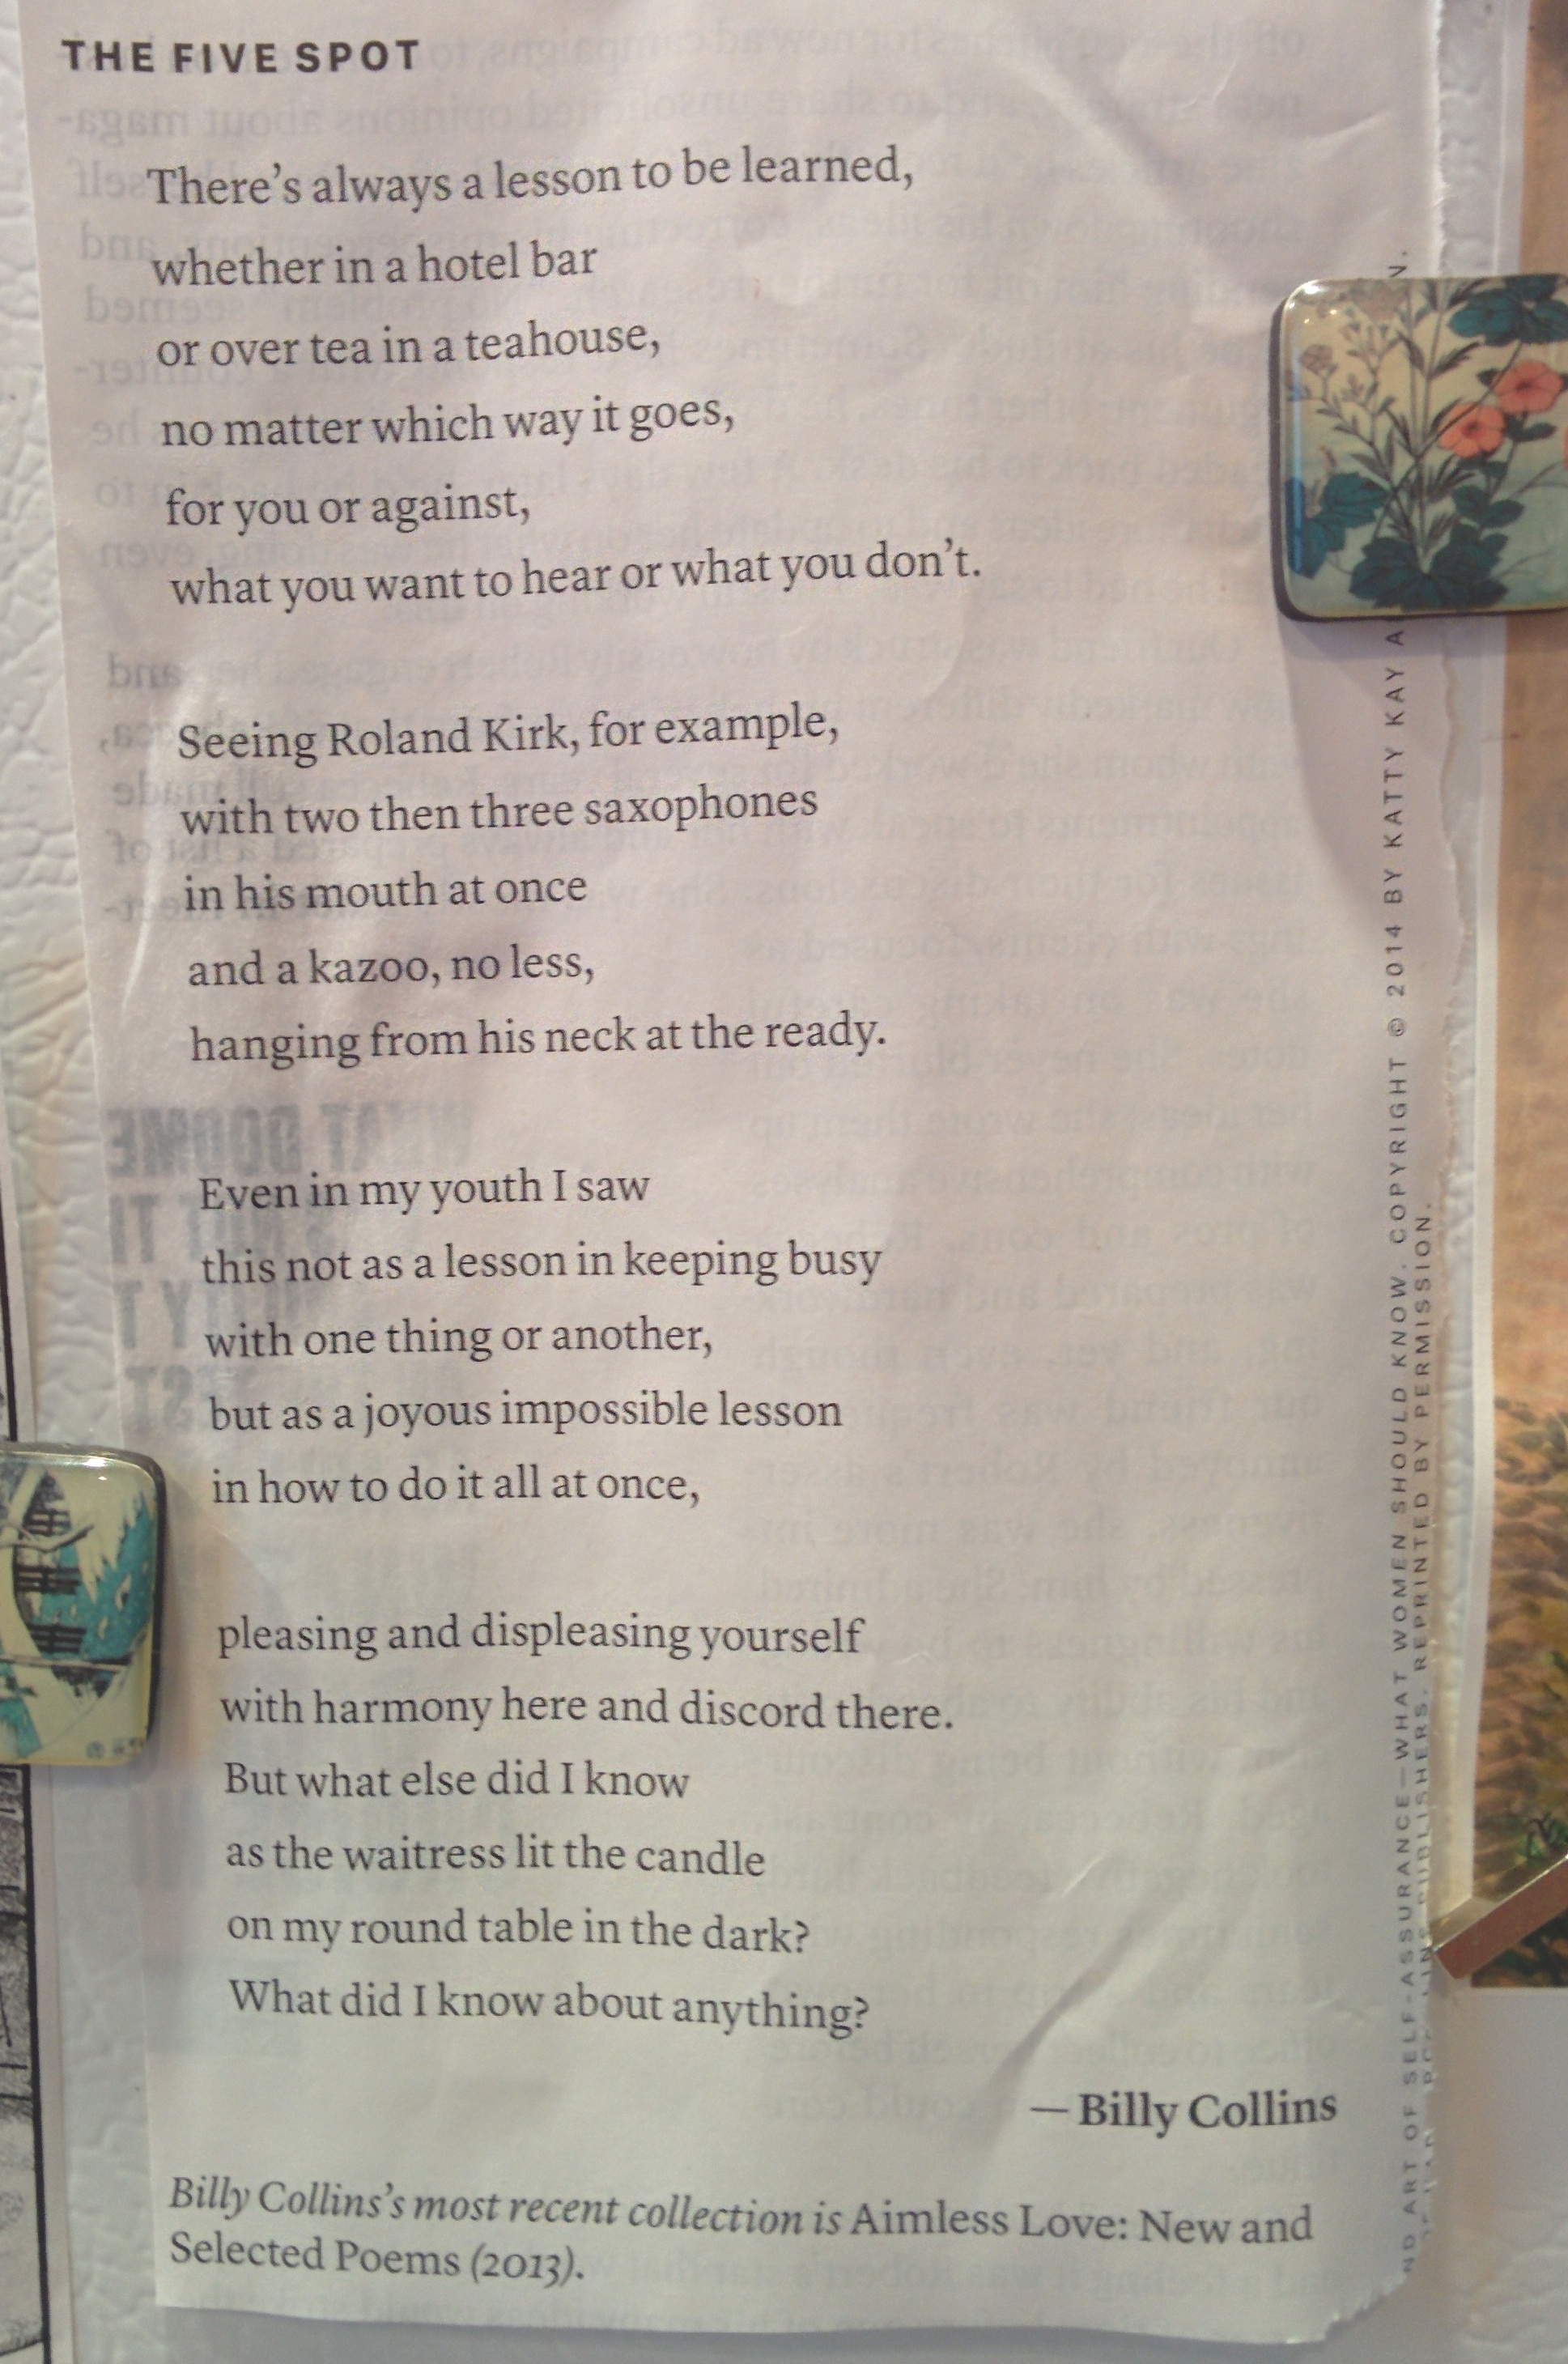 The Five Spot by Billy Collins